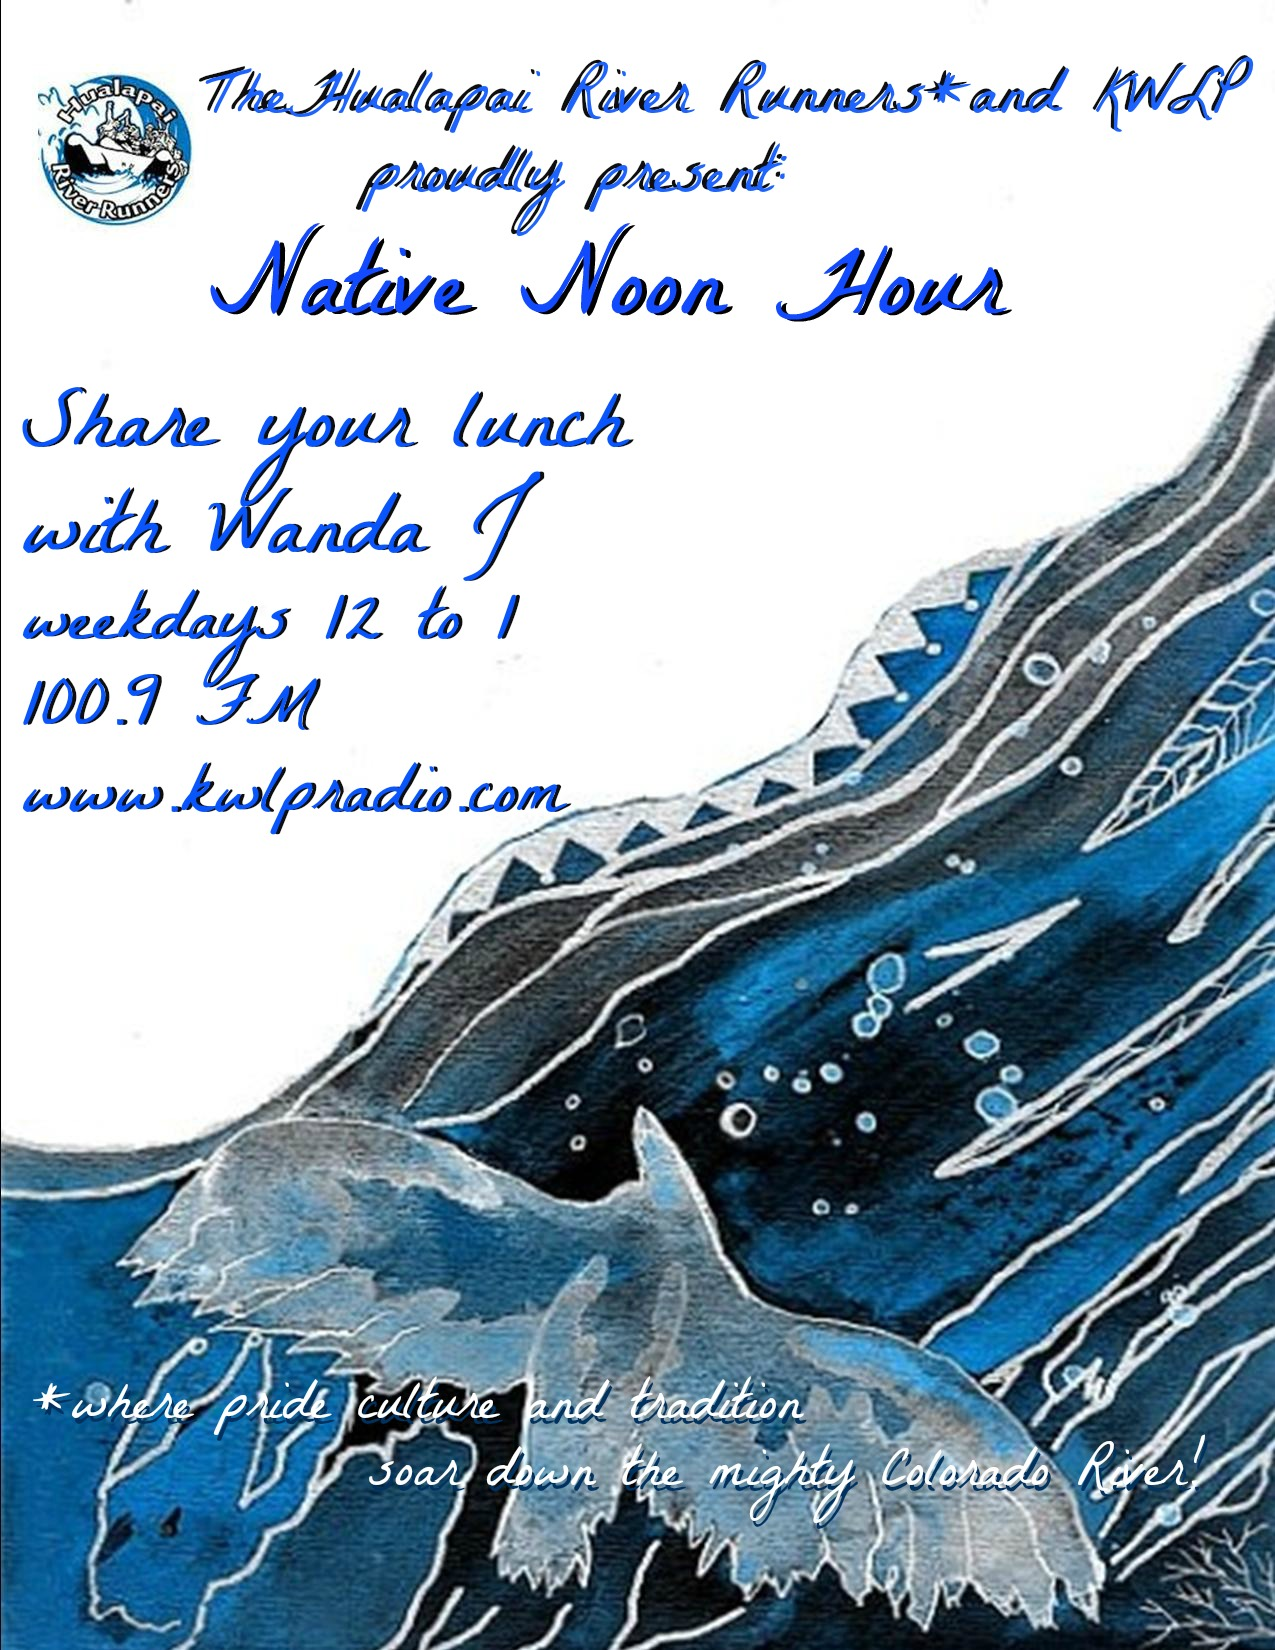 HHR Native Noon Hour